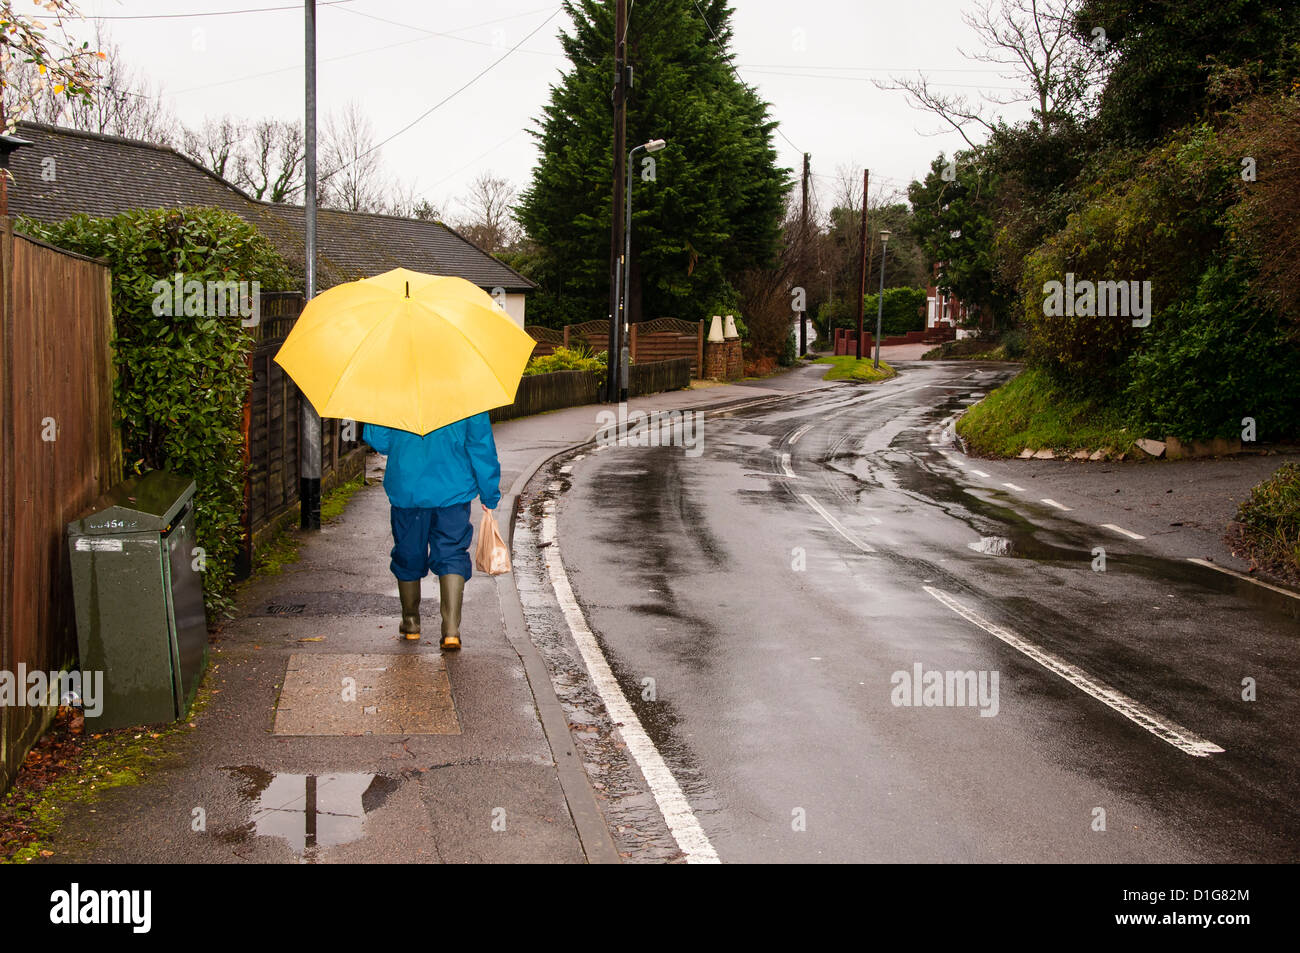 Woman with a Yellow Umbrella Walking in the Rain - Stock Image